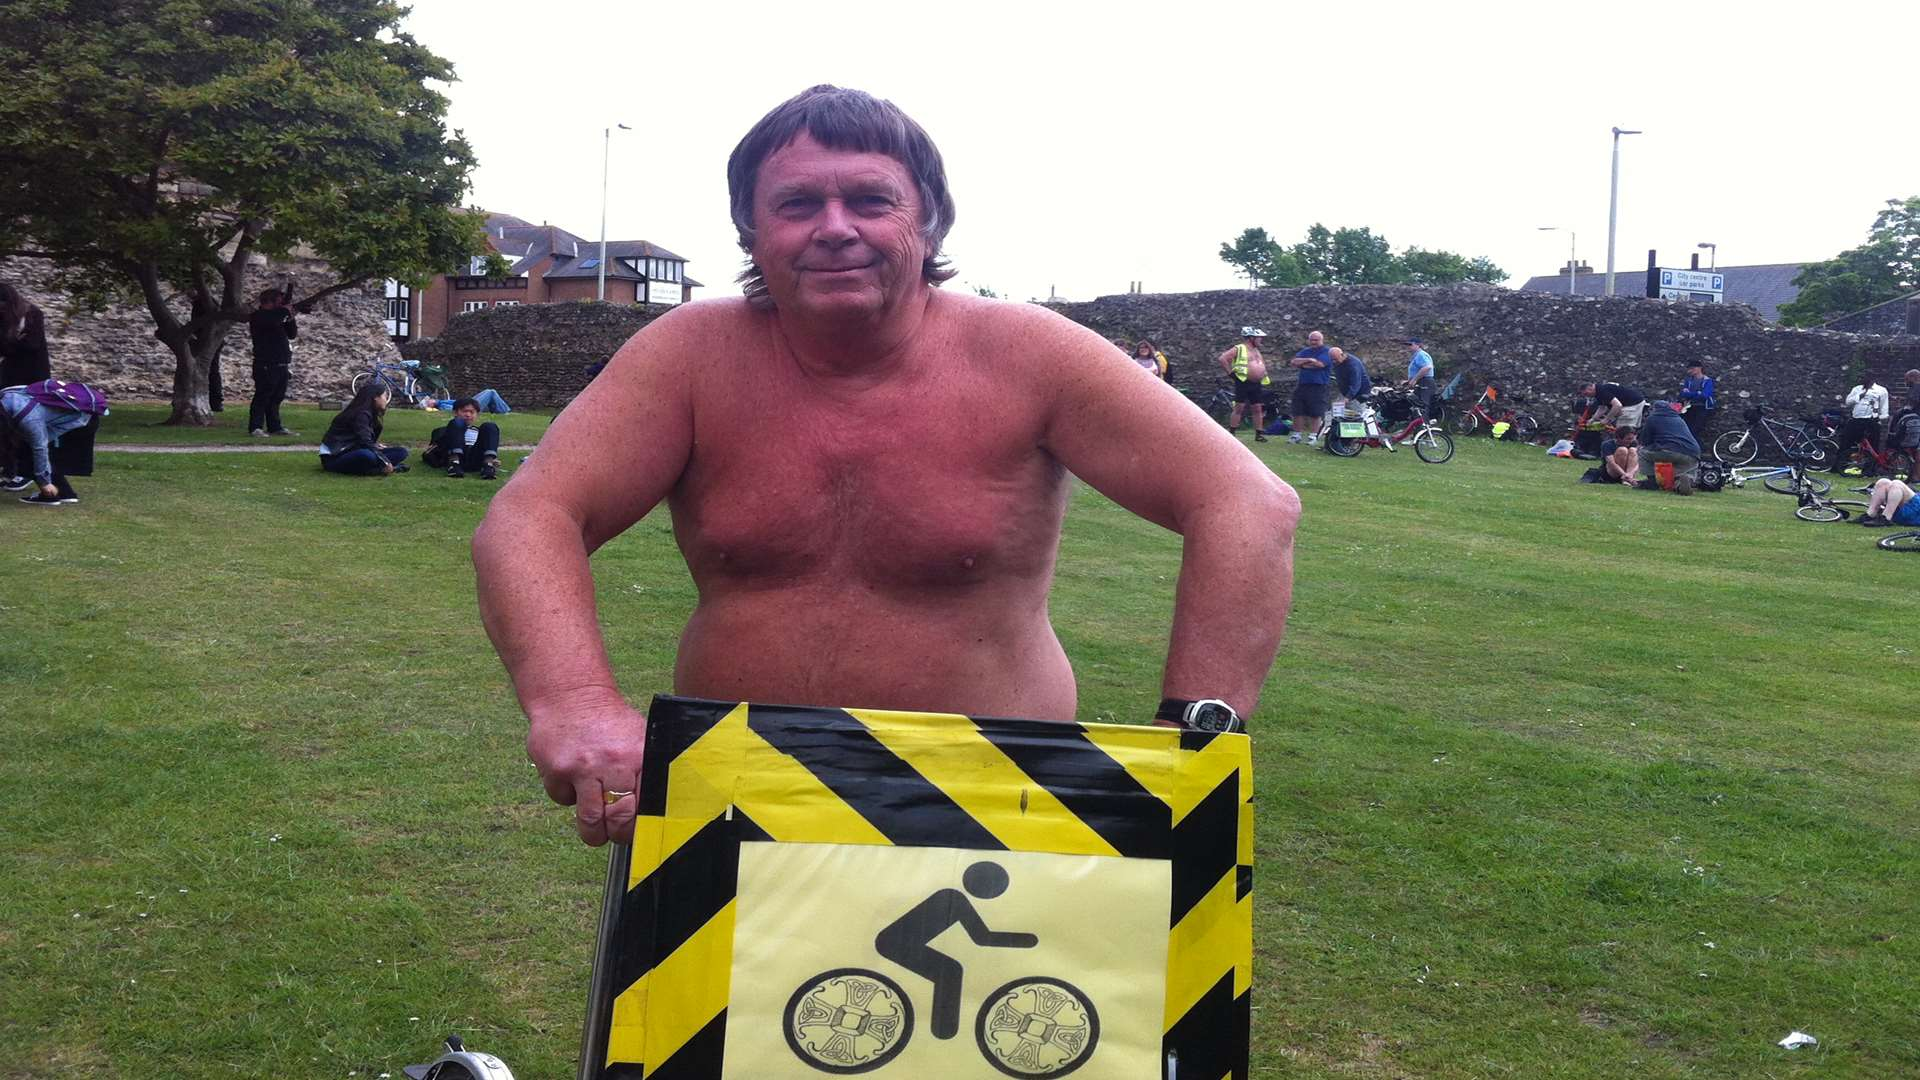 Naked bike ride organiser Barry Freeman